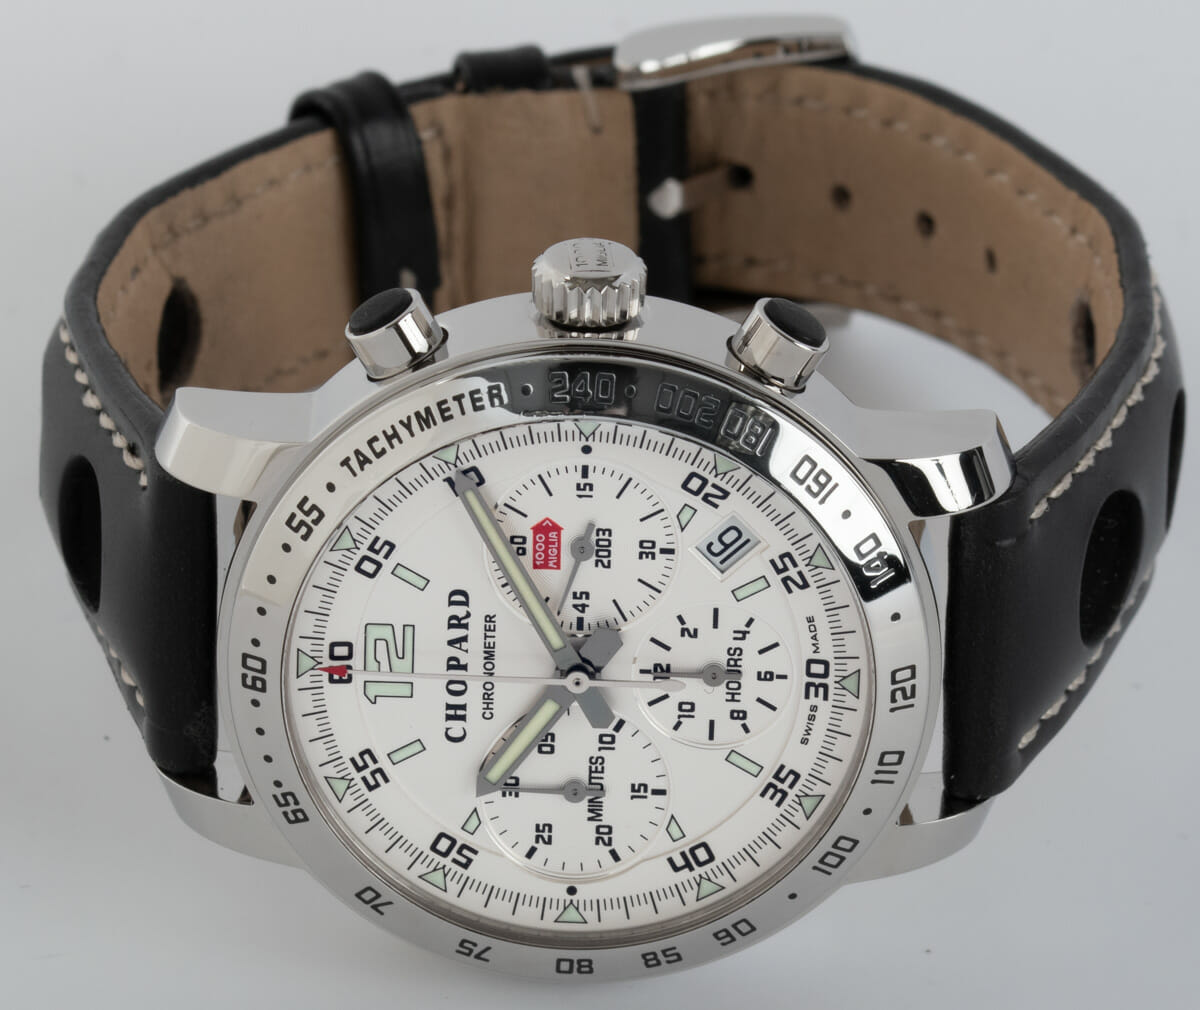 Front View of Mille Miglia Chronograph